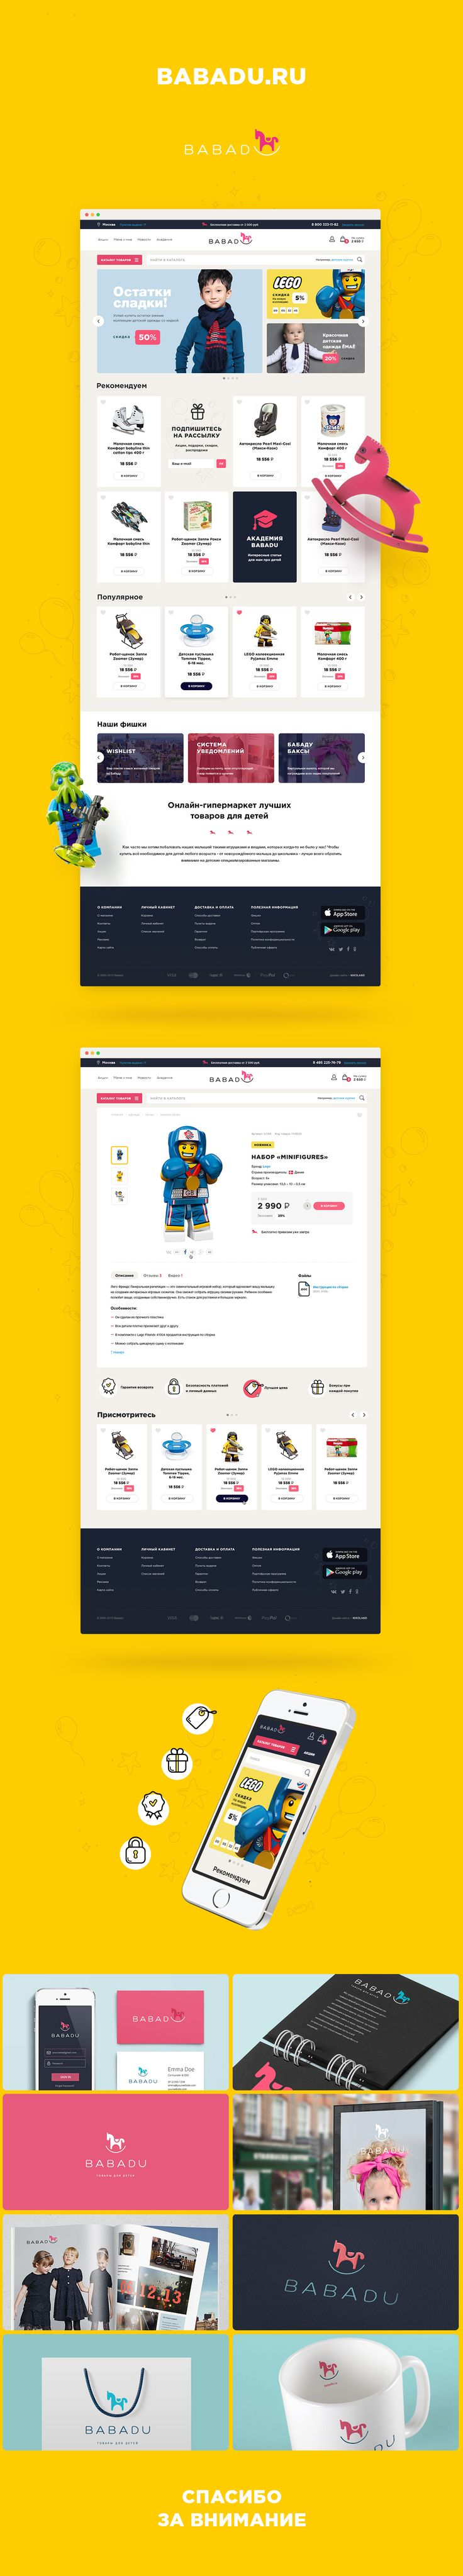 "查看此 @Behance 项目:""Babadu - e-commerce""https://www.behance.net/gallery/44150373/Babadu-e-commerce"